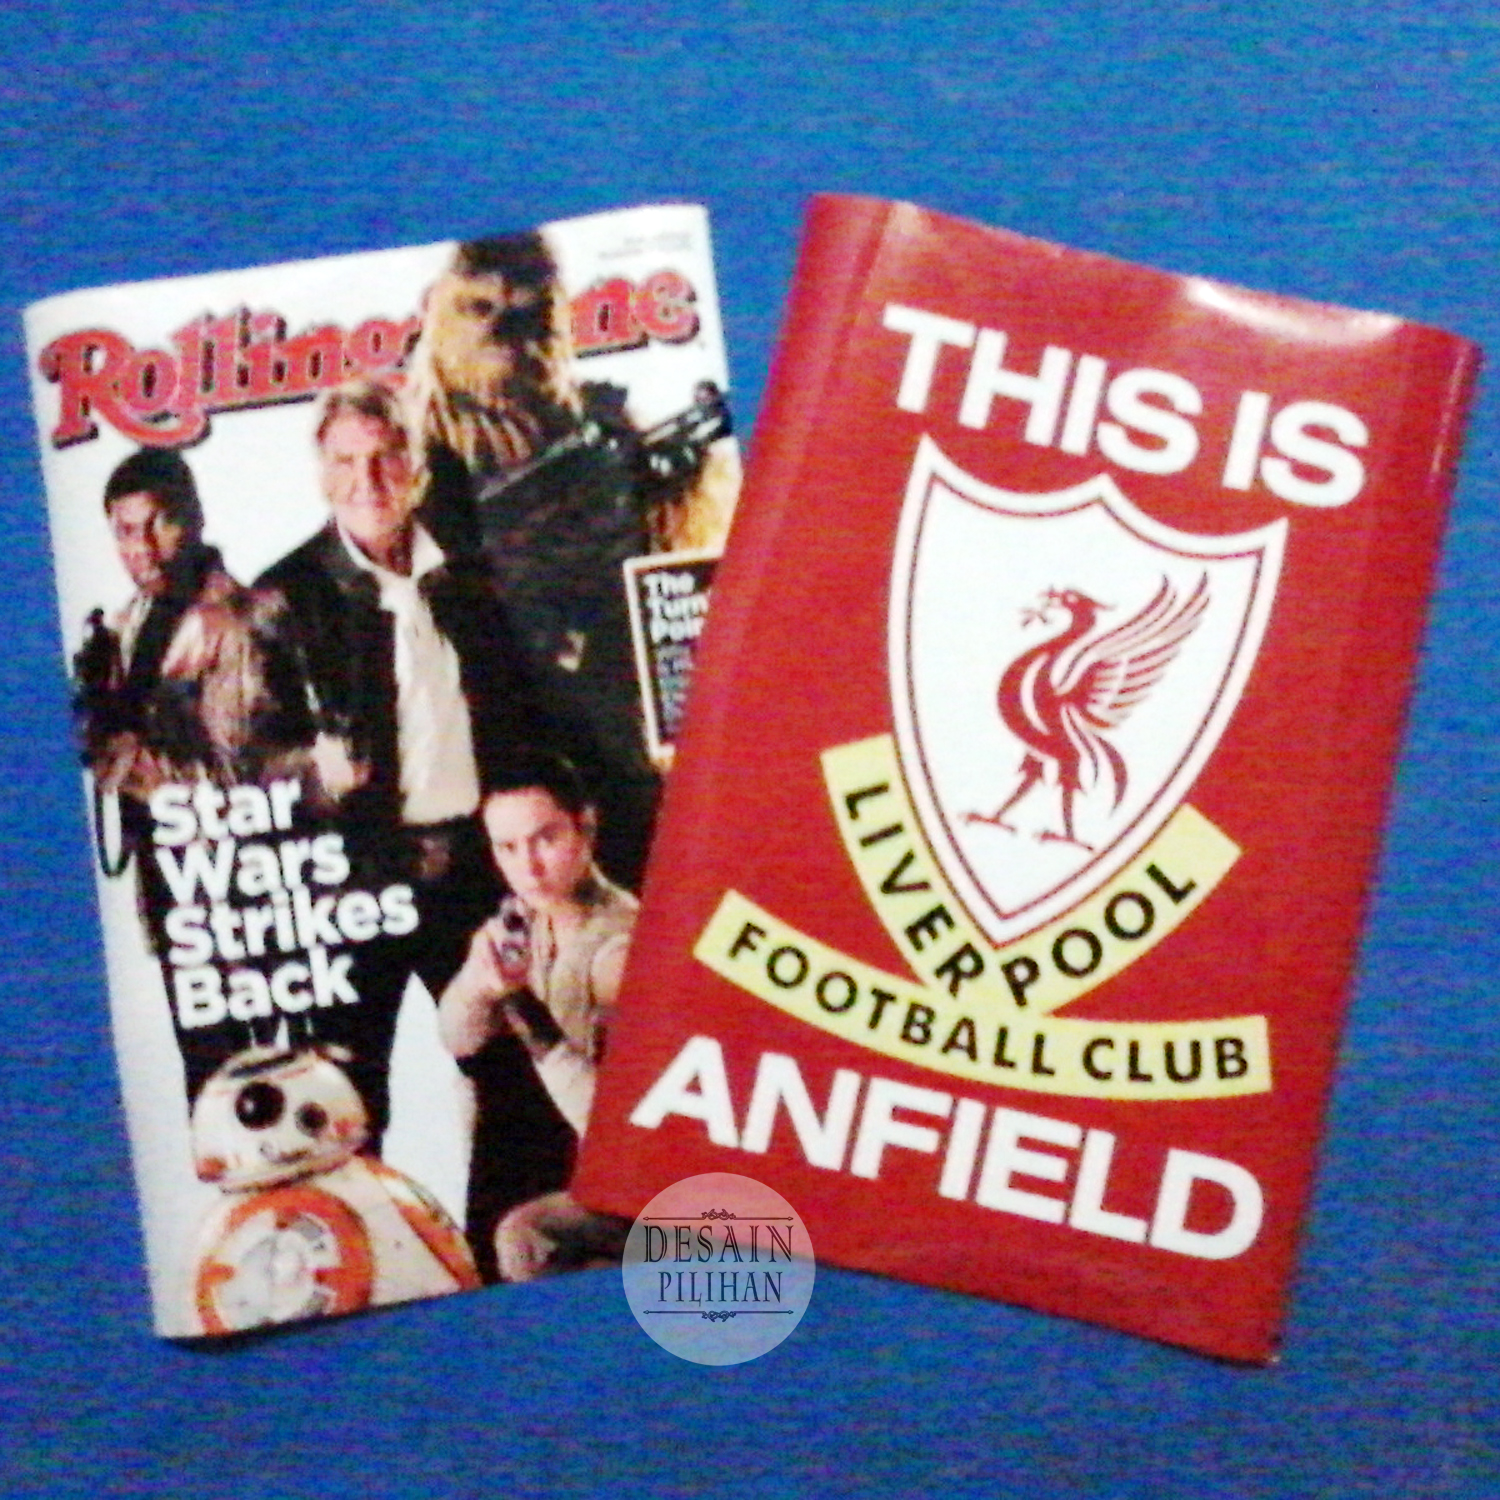 POSTER LIVERPOOL, POSTER ROLLINGSTONE